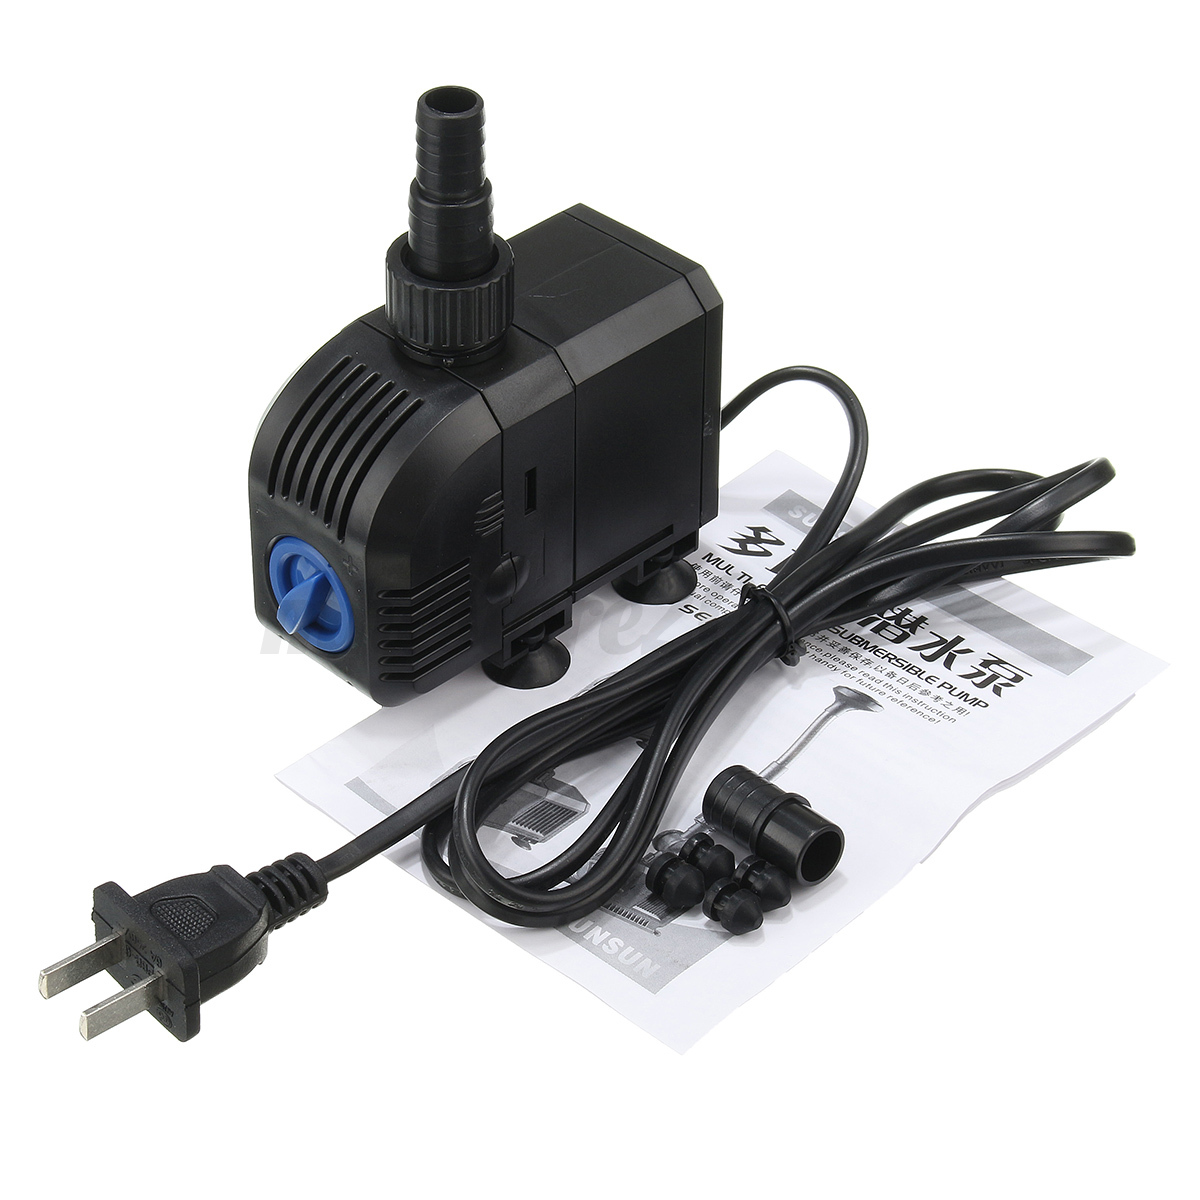 Submersible water pump fish tank aquarium waterfall for Fish water pump